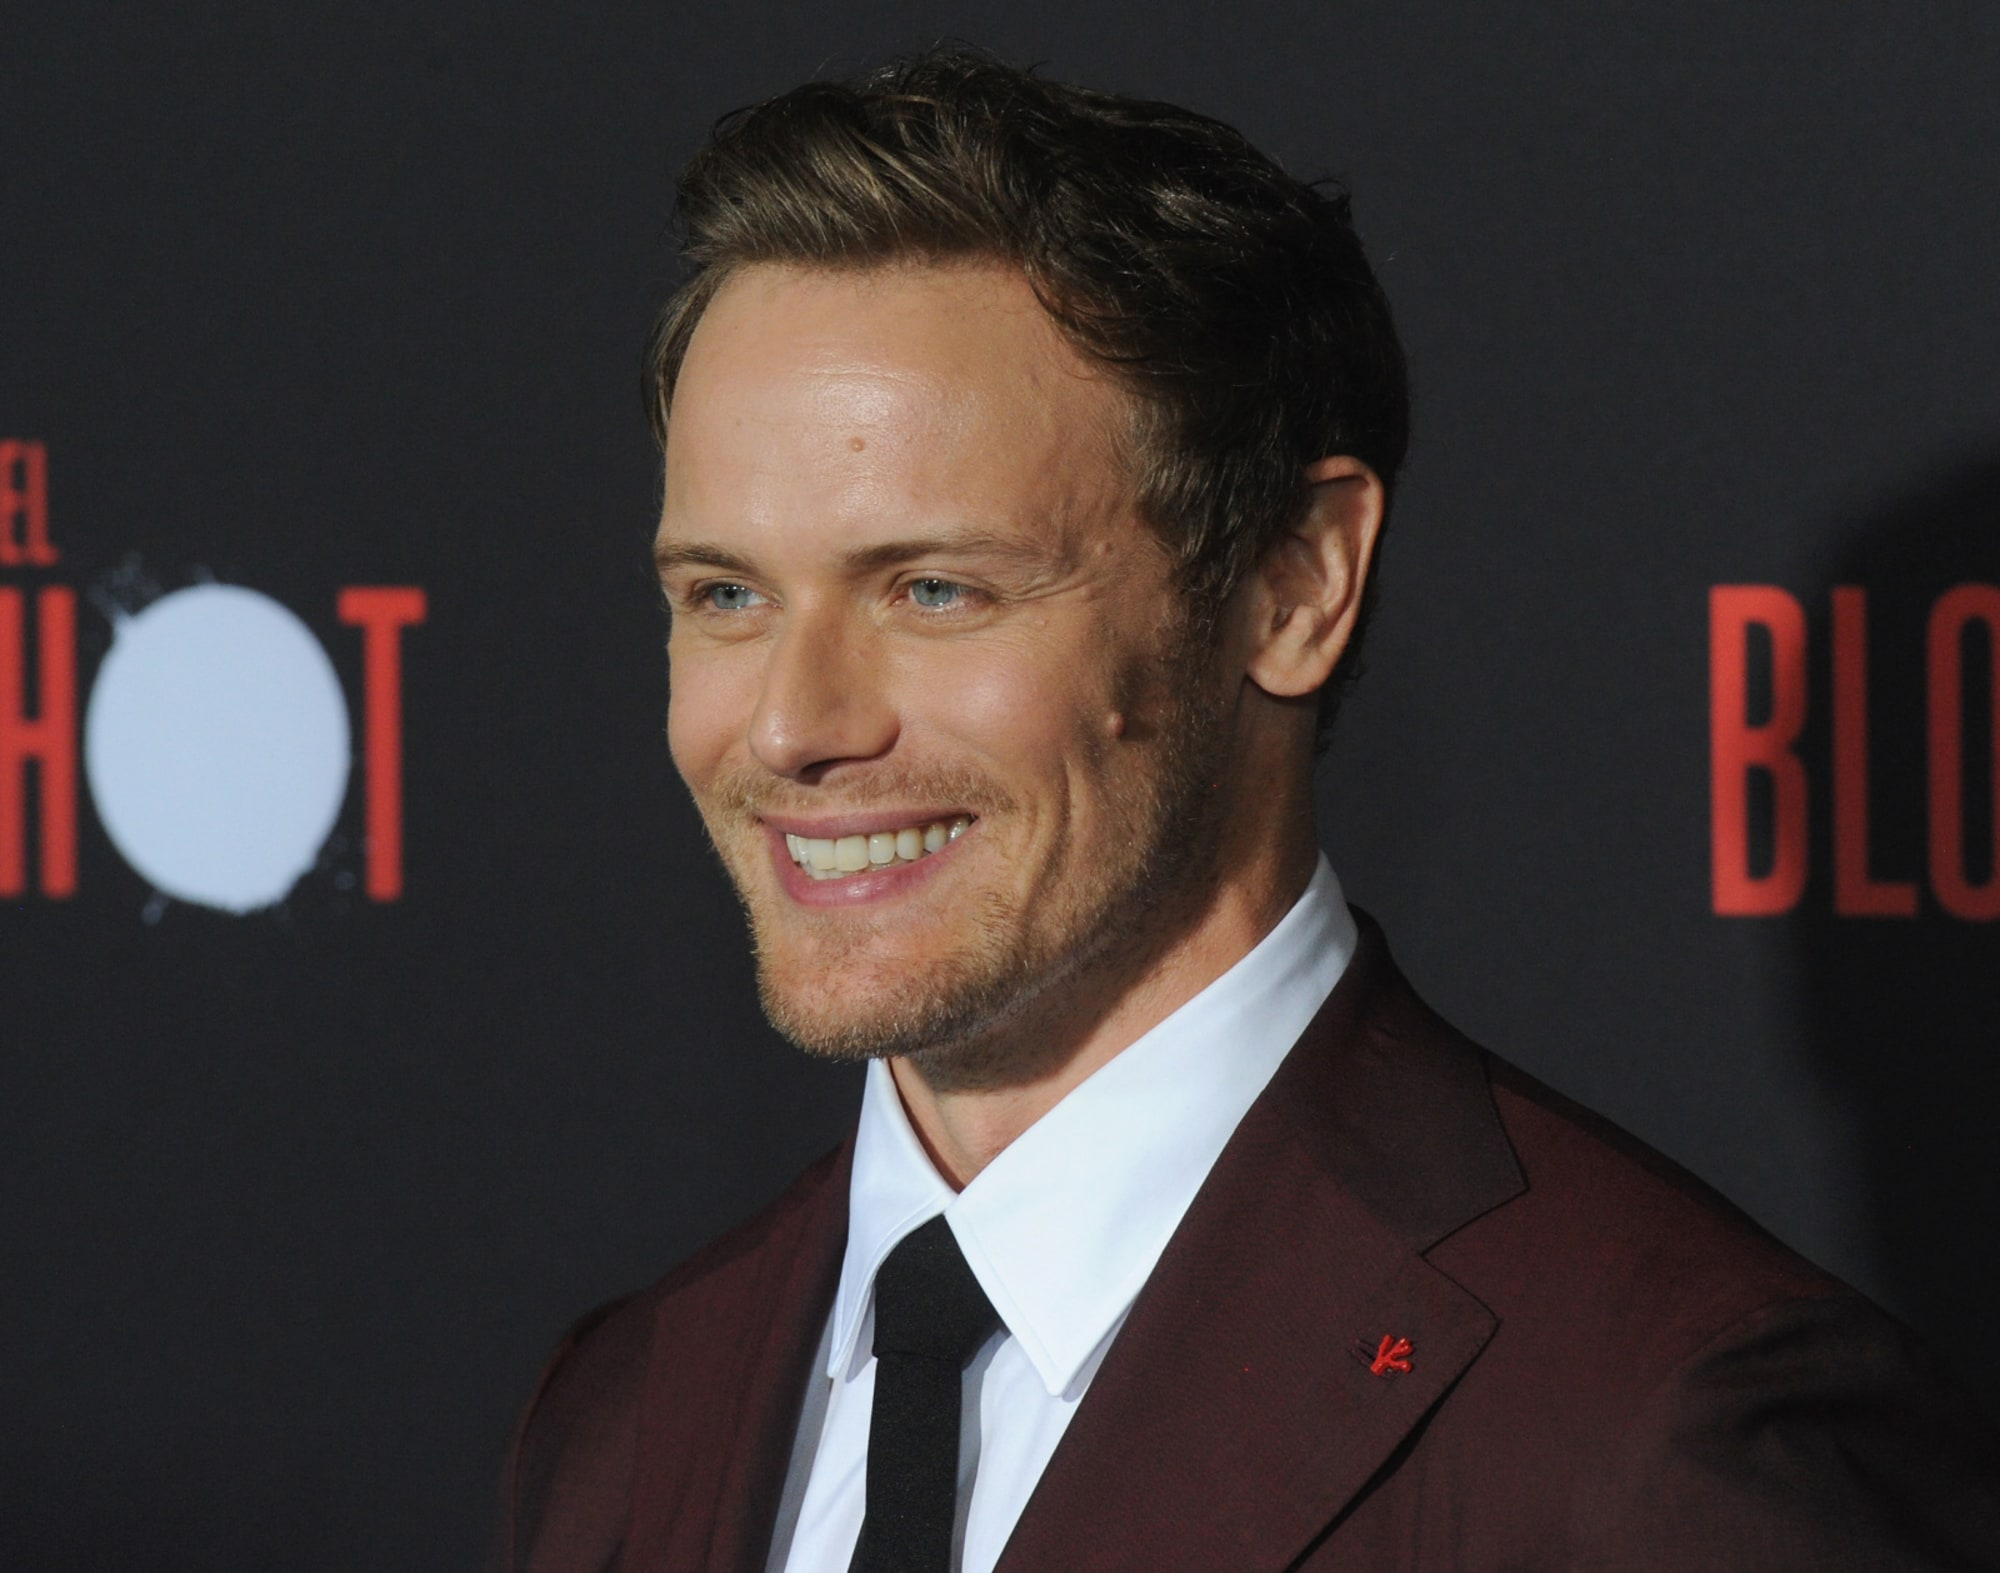 Outlander's Sam Heughan tops fan poll of who should be next James Bond